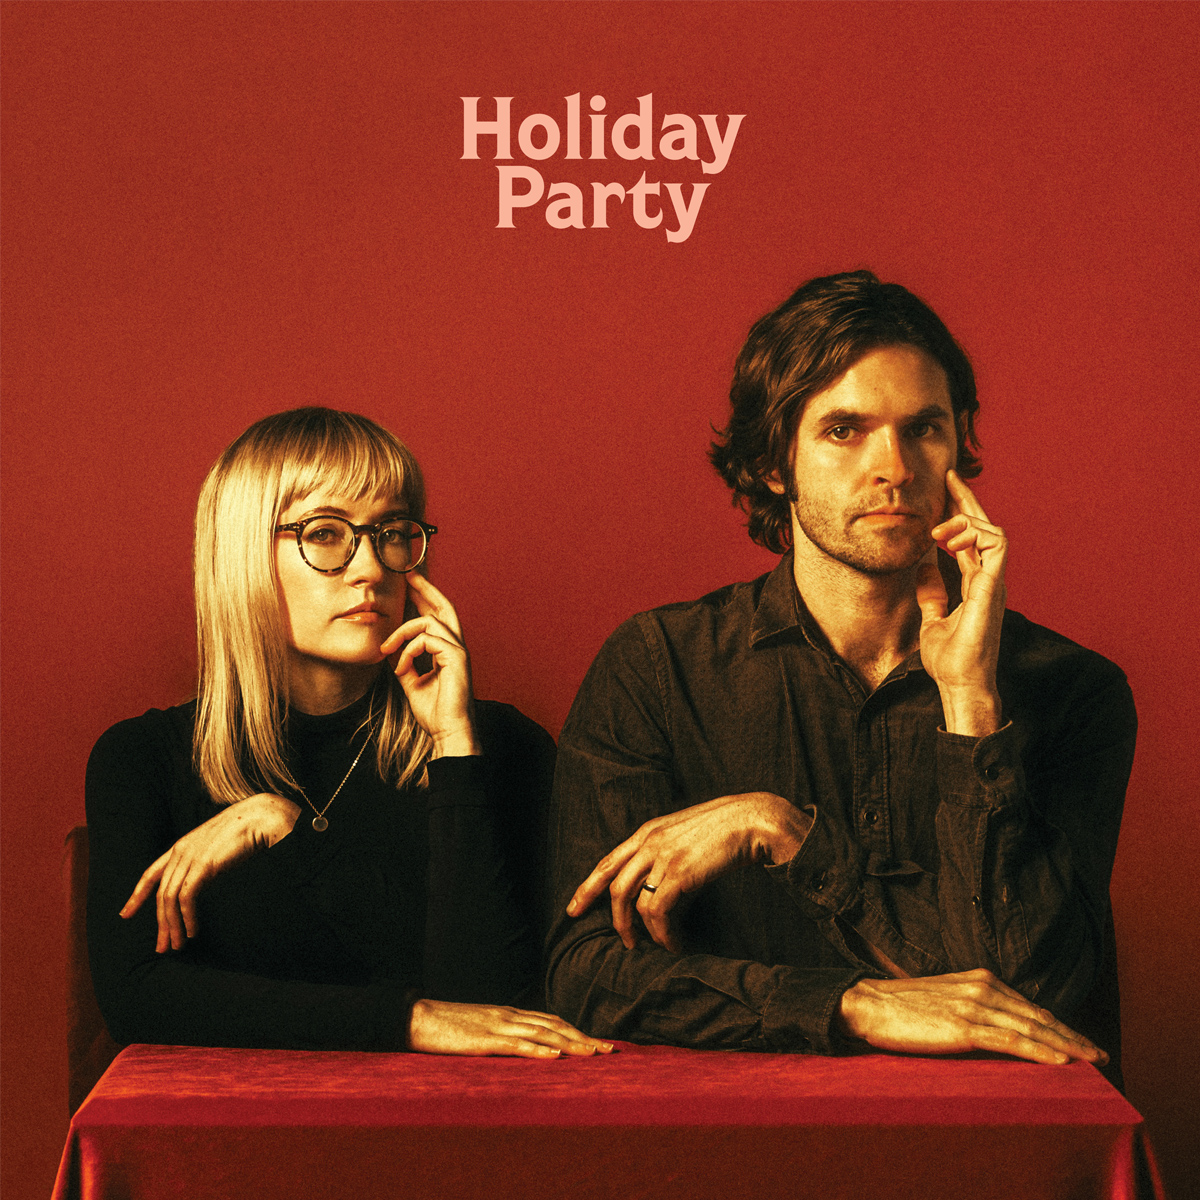 Holiday Party new album